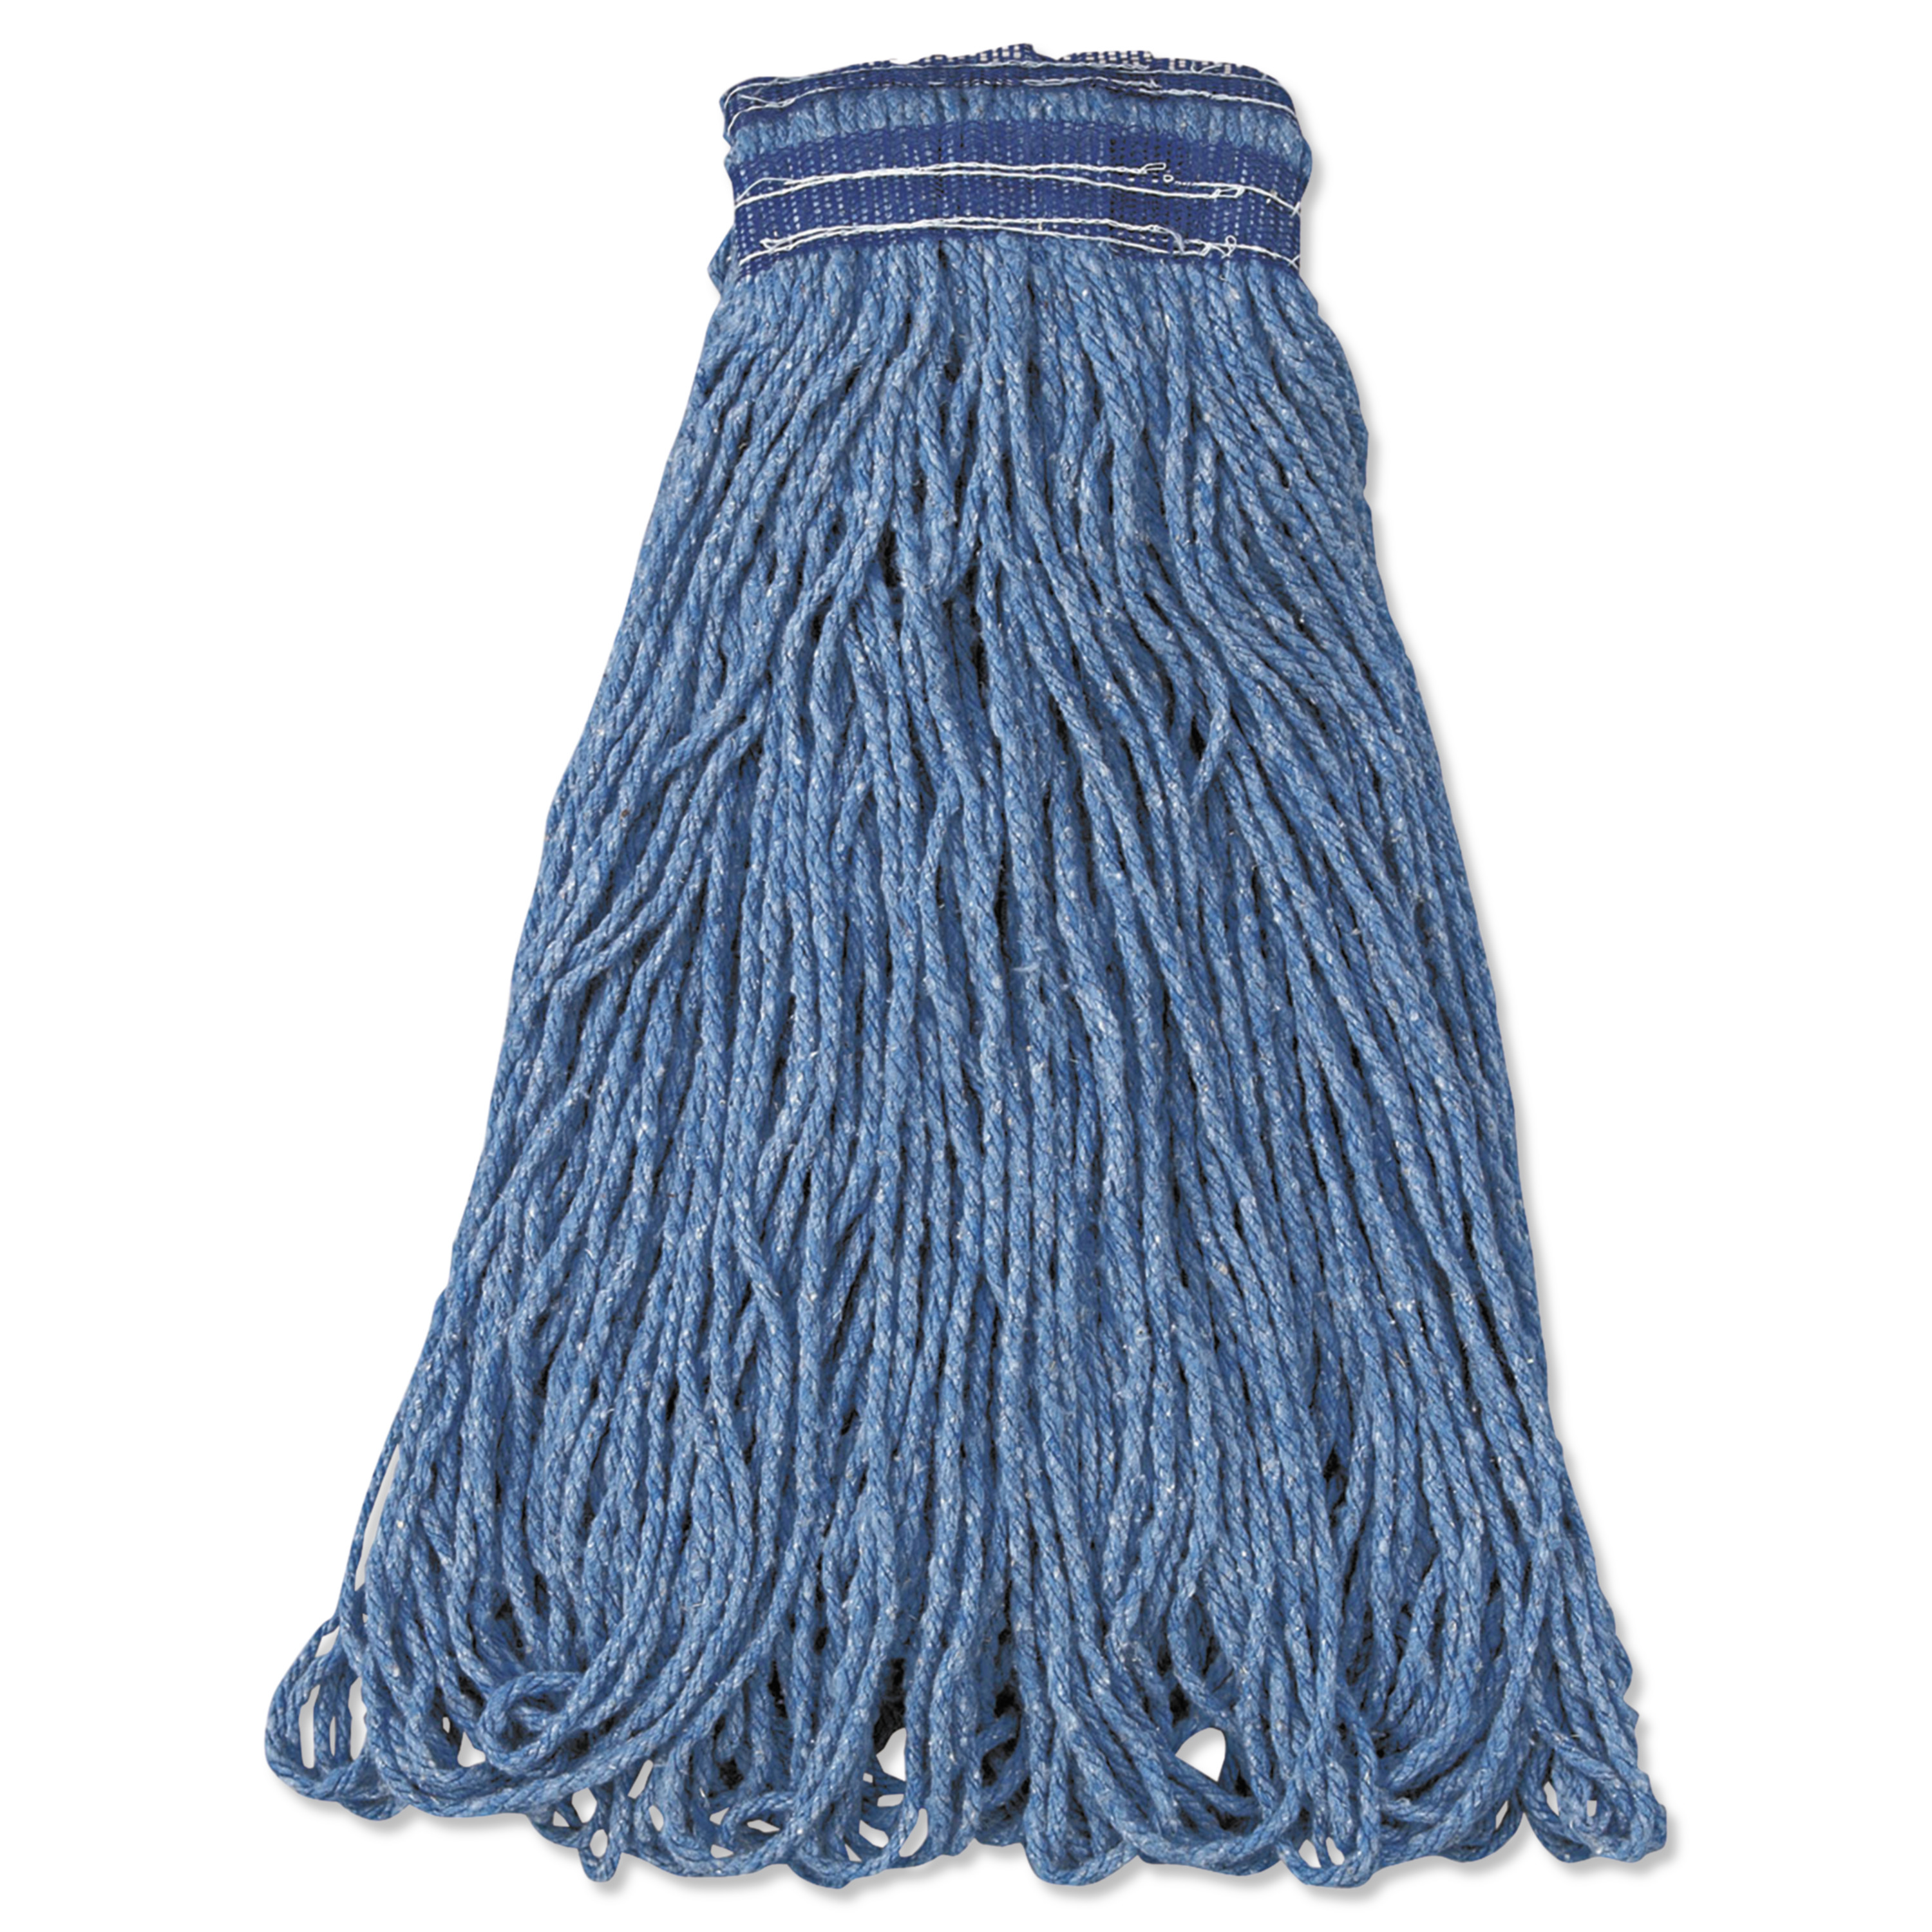 Rubbermaid Commercial Universal Headband Mop Head, Cotton/Synthetic, 24oz, Blue, 12/Carton